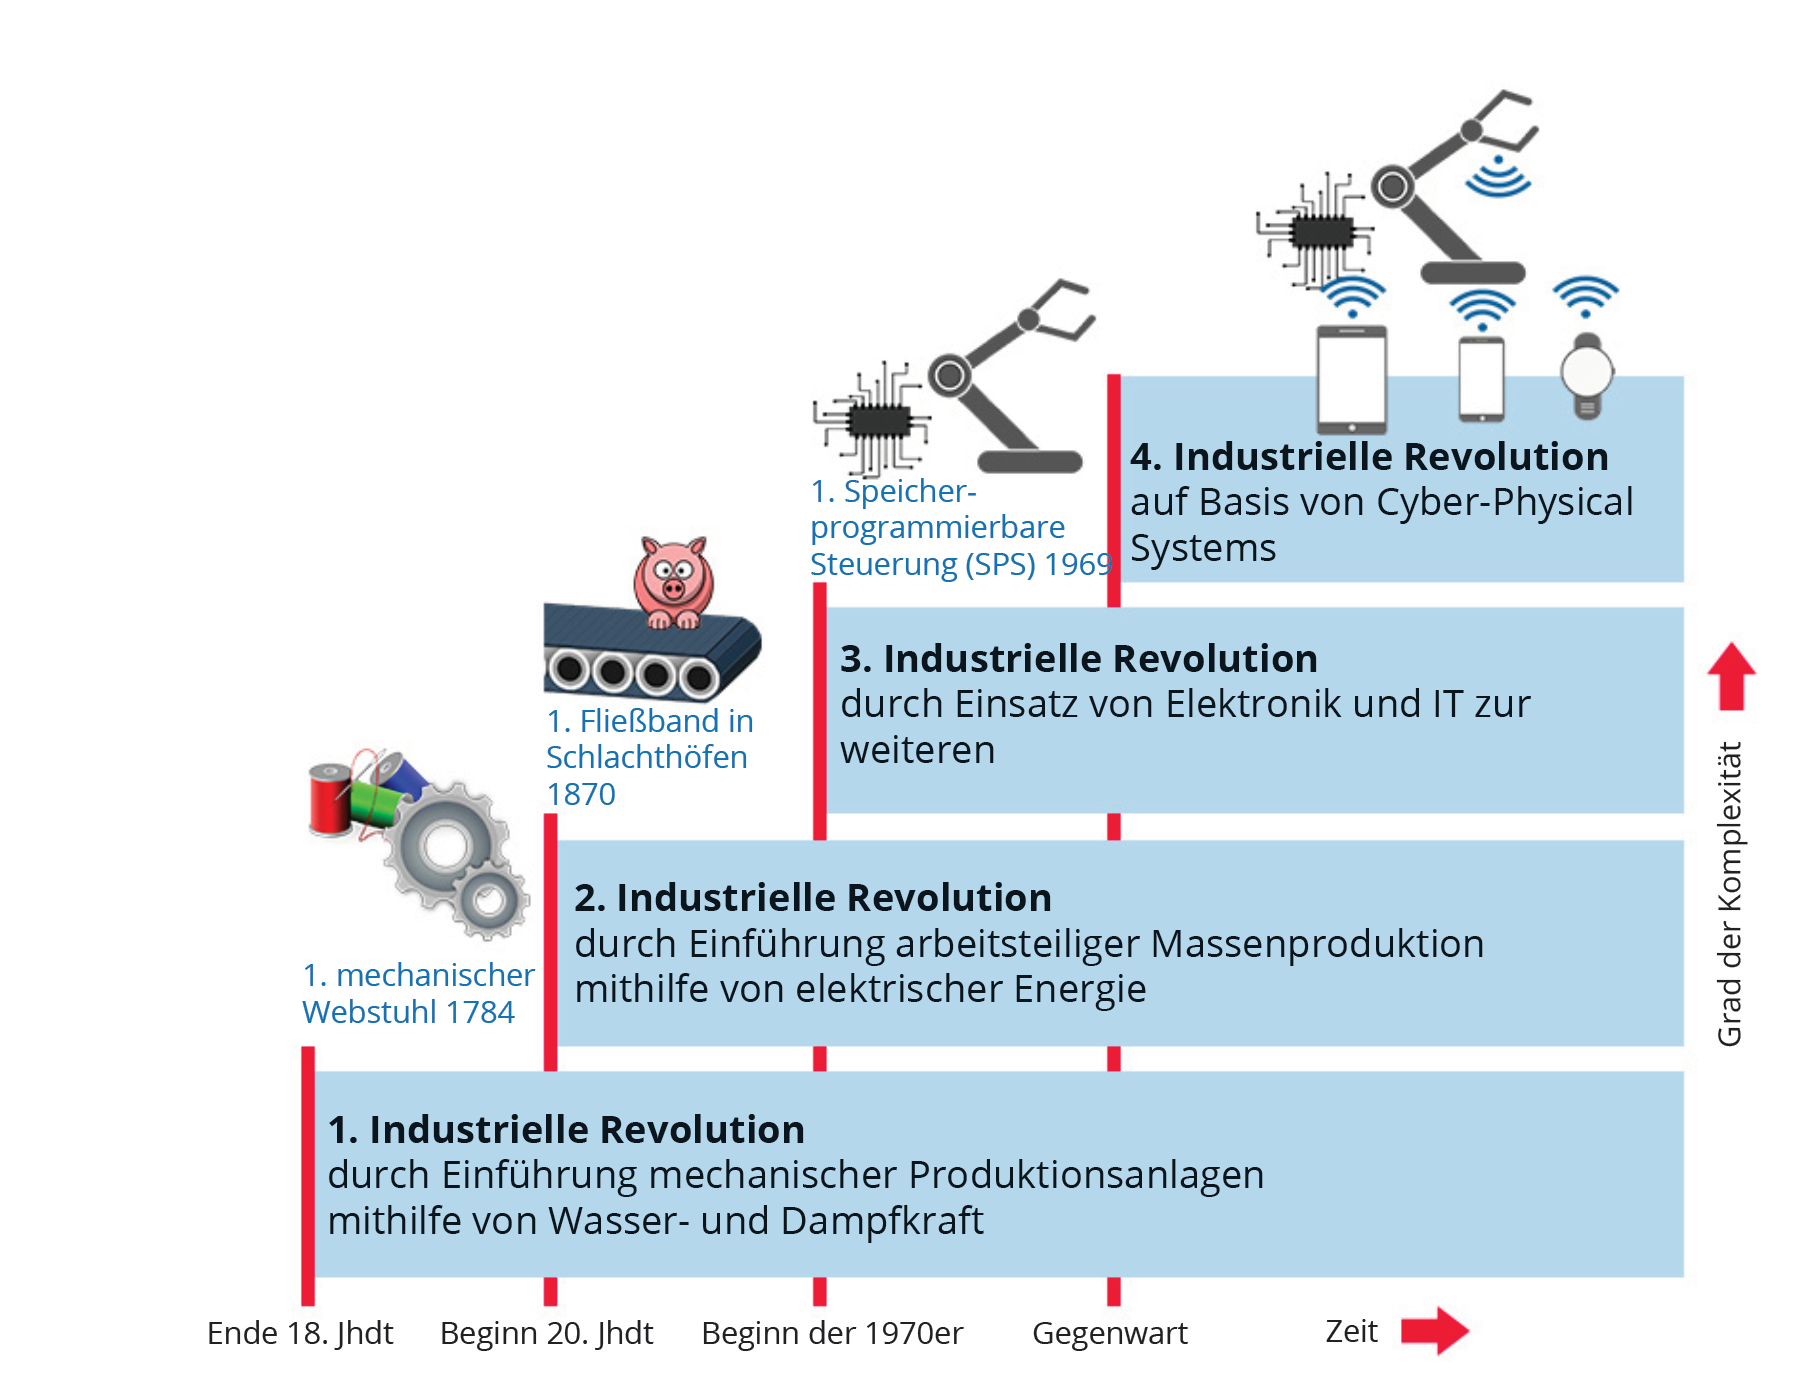 4te-digitale-revolution-schaubild.png